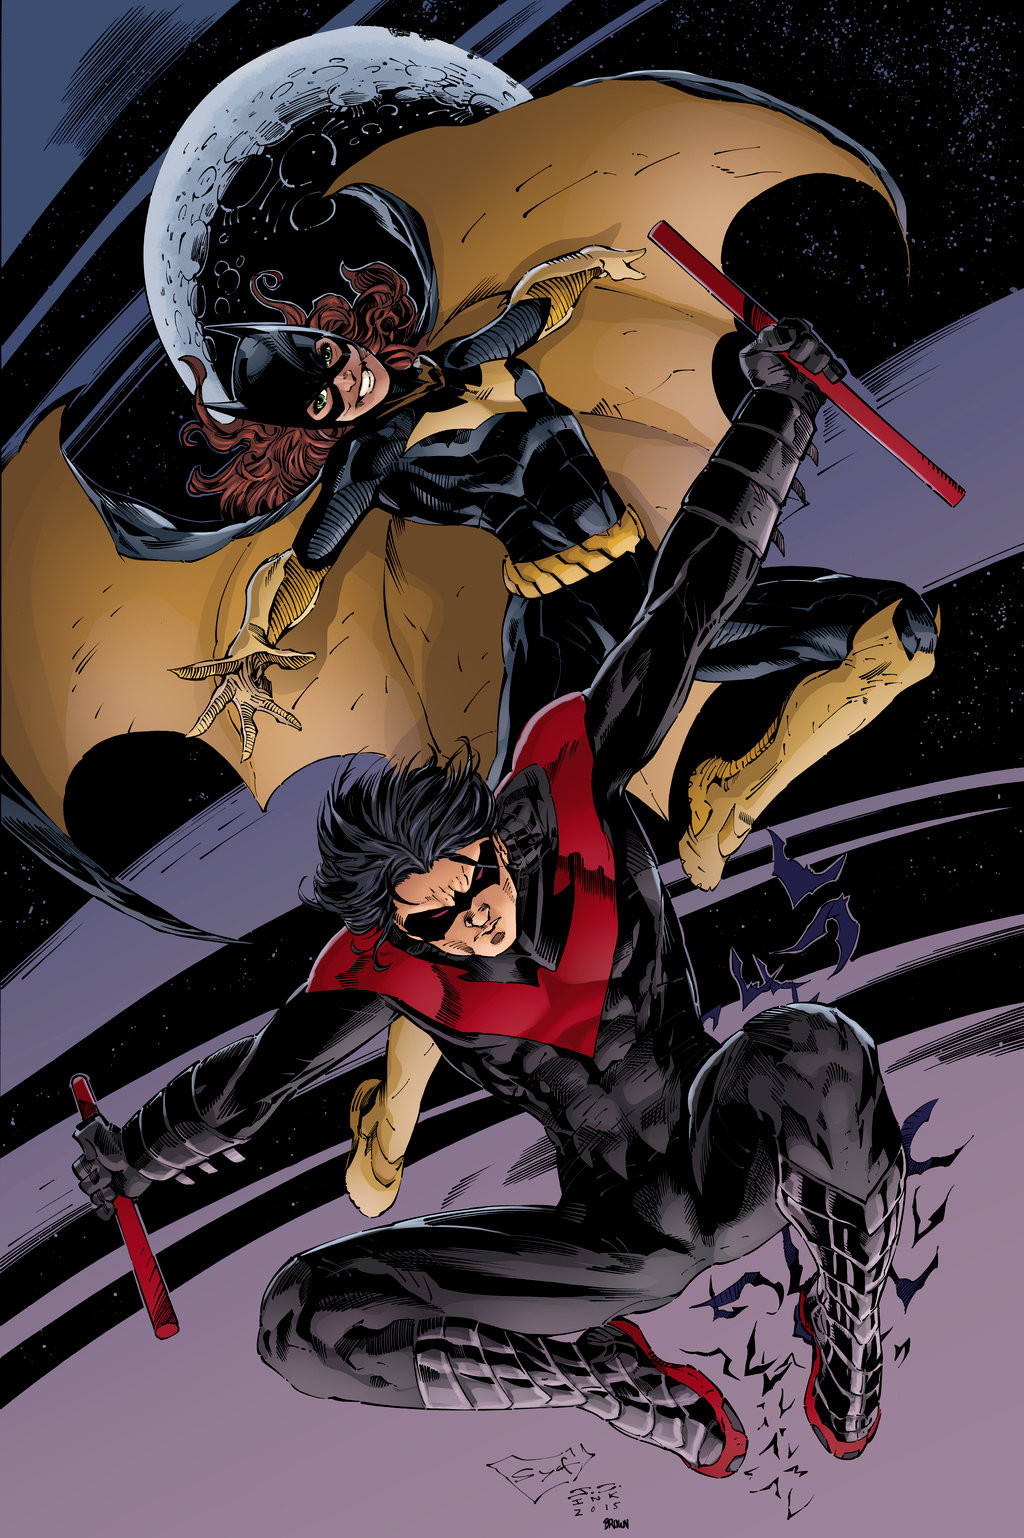 Matt james batgirl and nightwing red by snakebitartstudio db186kj